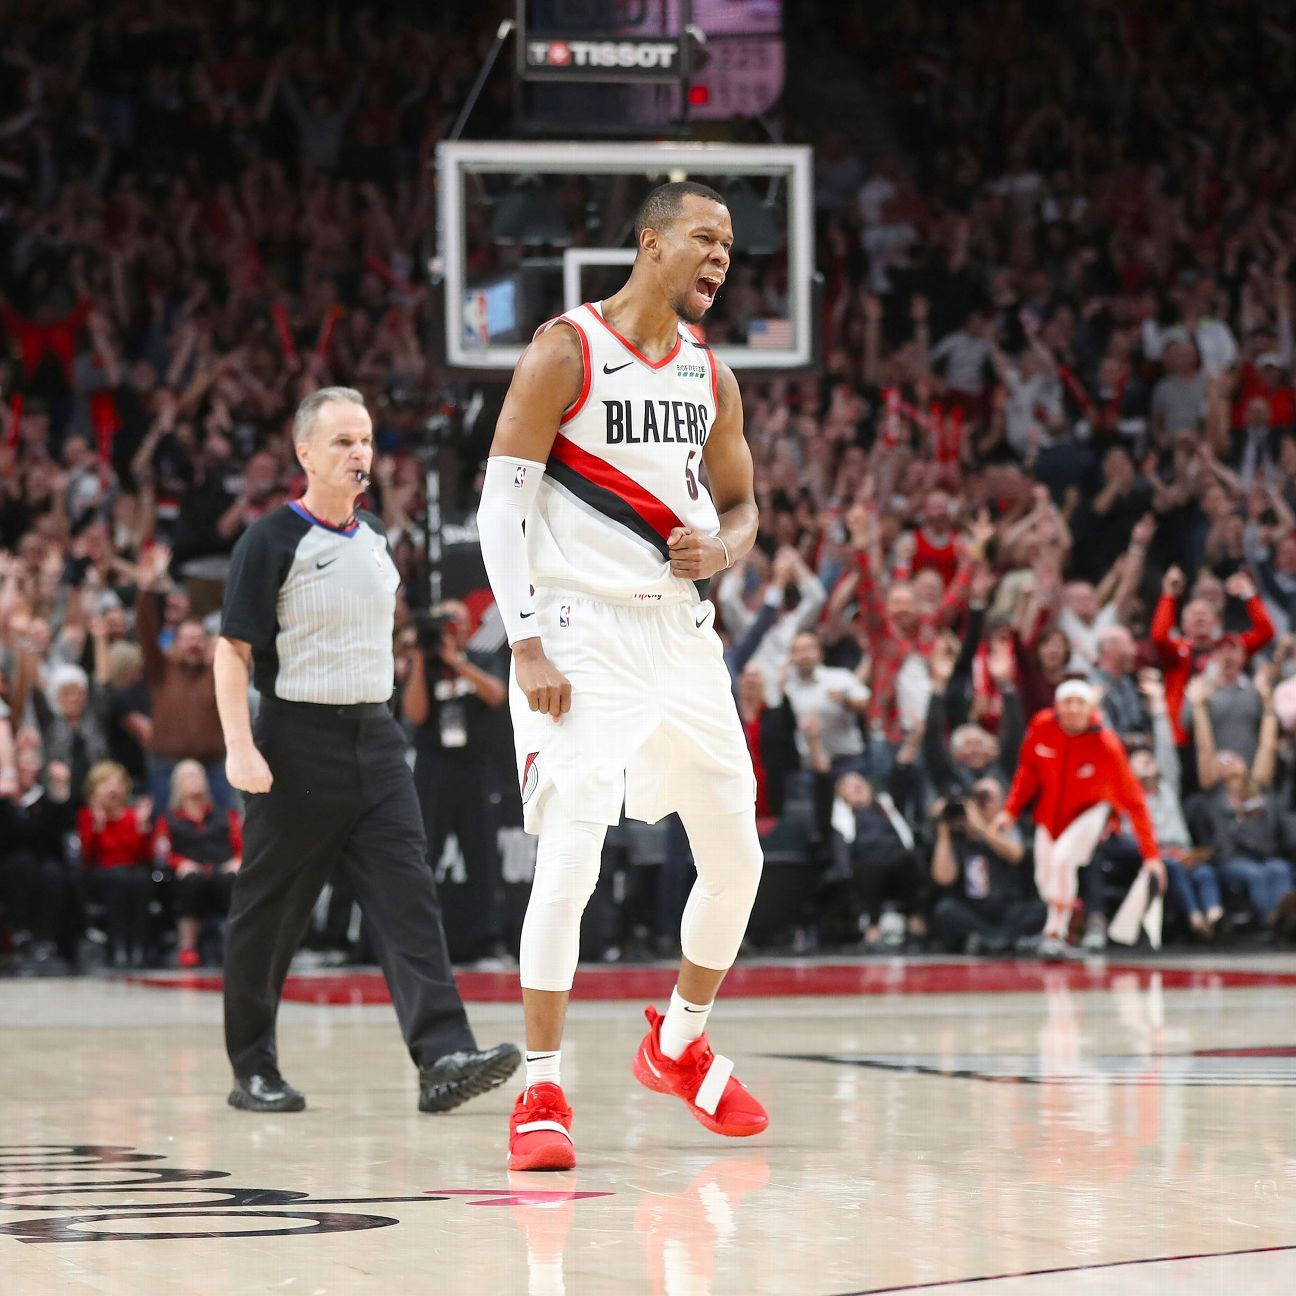 Blazers ride McCollum's 37 to 1st WCF since 2000